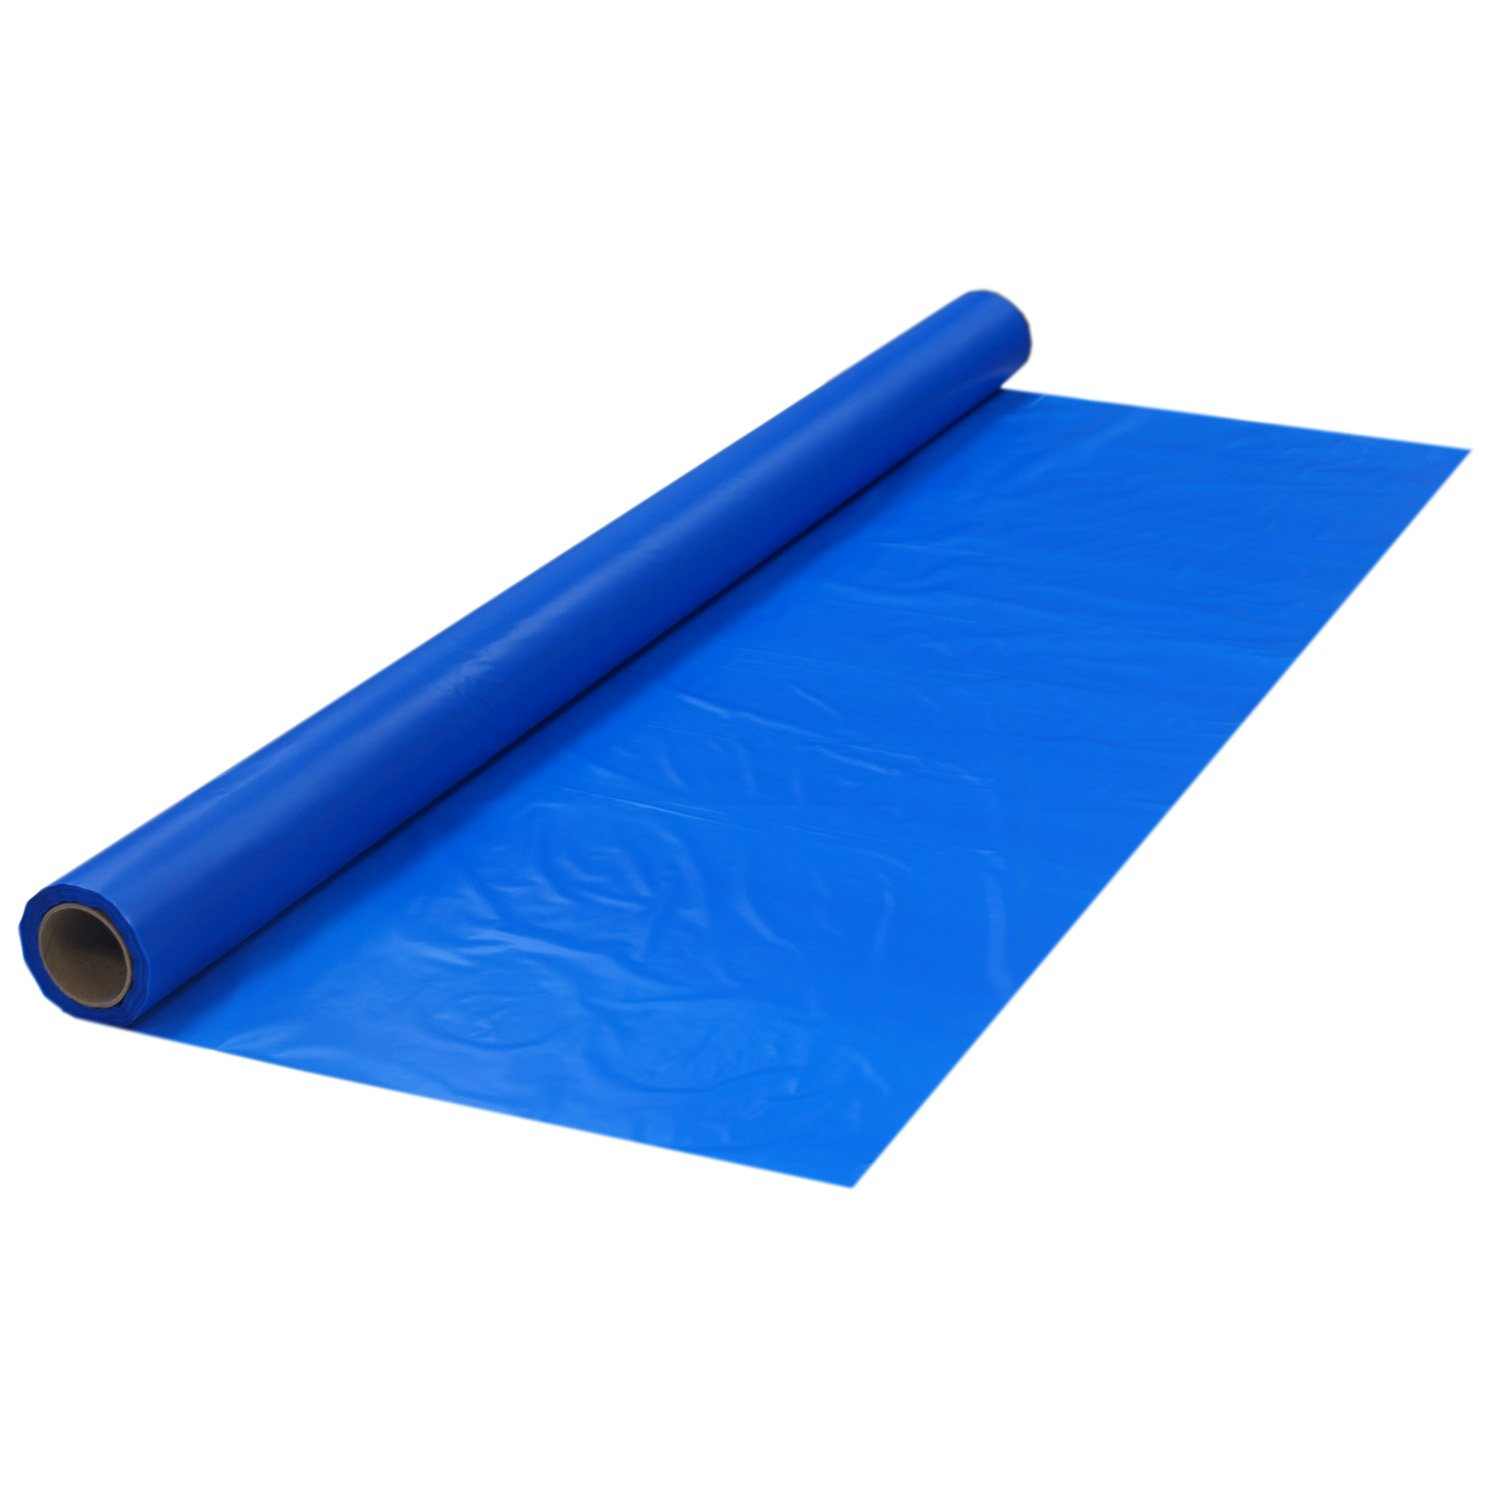 Party Essentials Plastic Banquet Table Roll Available in 27 Colors, 40'' x 100', Royal Blue by Party Essentials